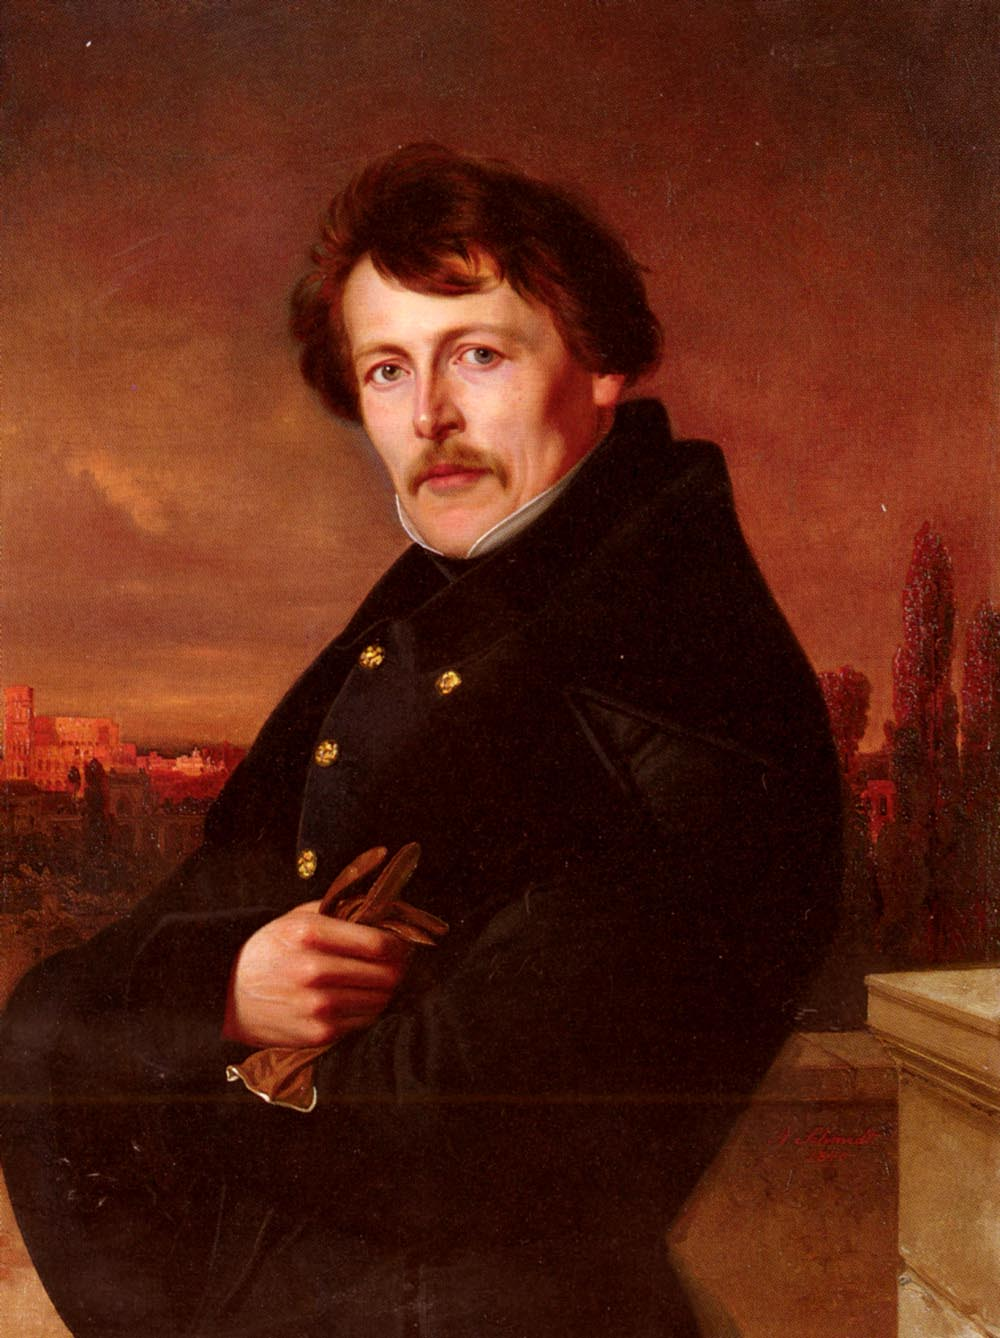 A Portrait Of A Gentleman, Rome In The Distance by Adolf Schmidt